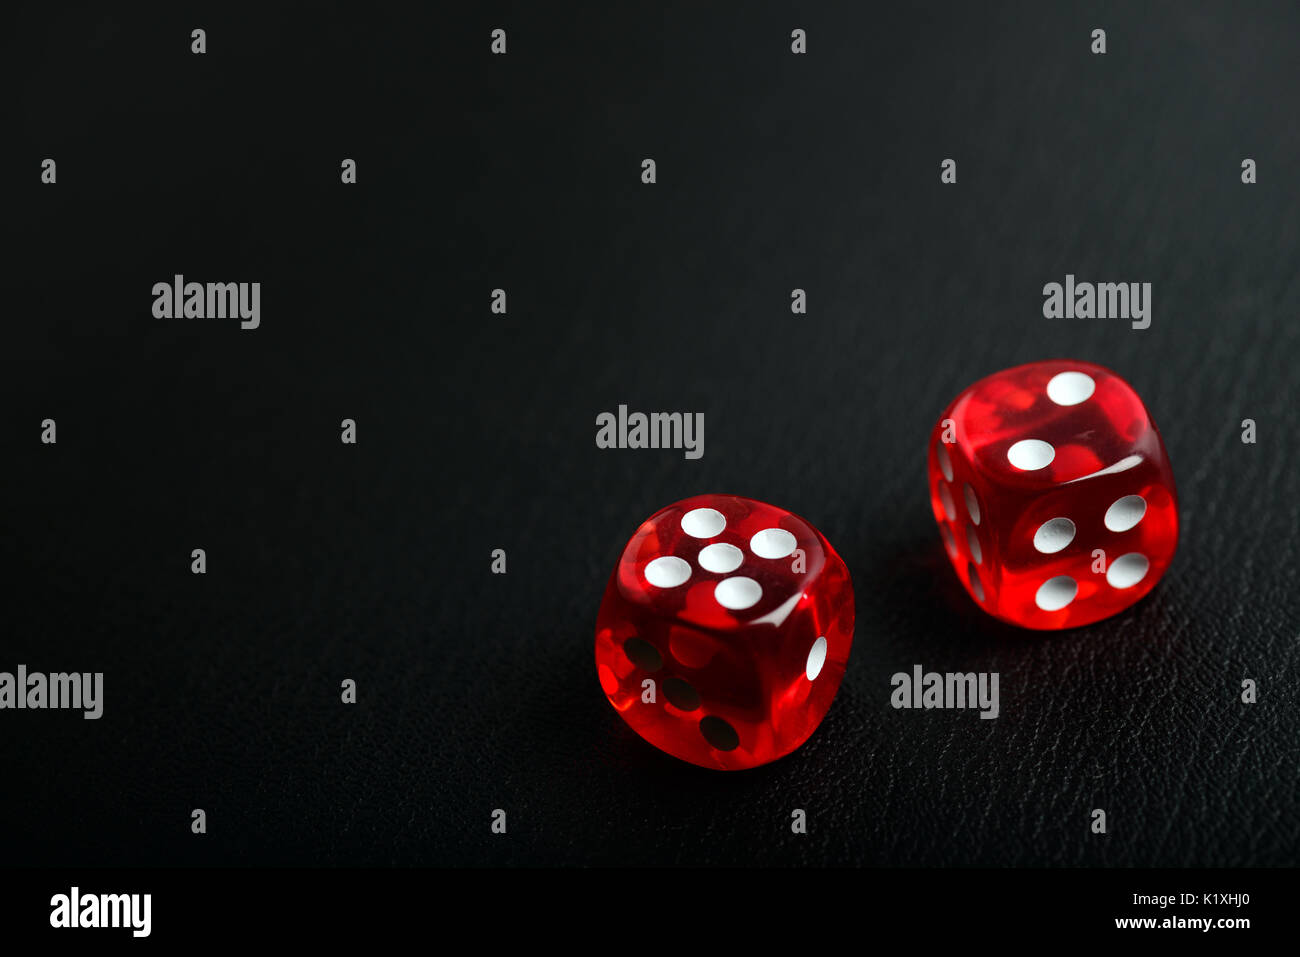 Two red casino poker dice counting seven on a bleack leather background with copy spce for your text - Stock Image